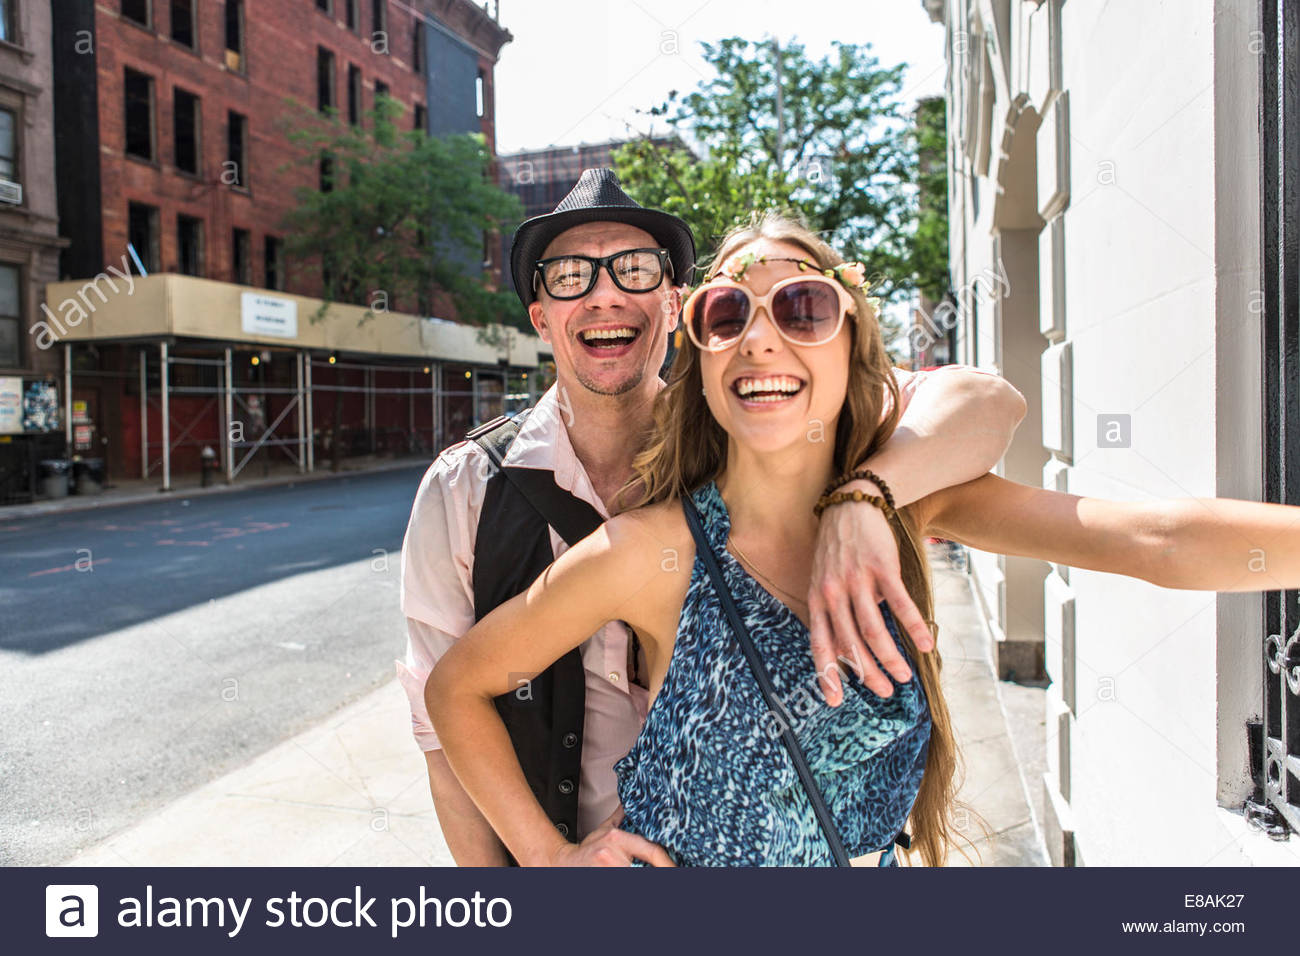 Funky couple in street, New York City, US - Stock Image